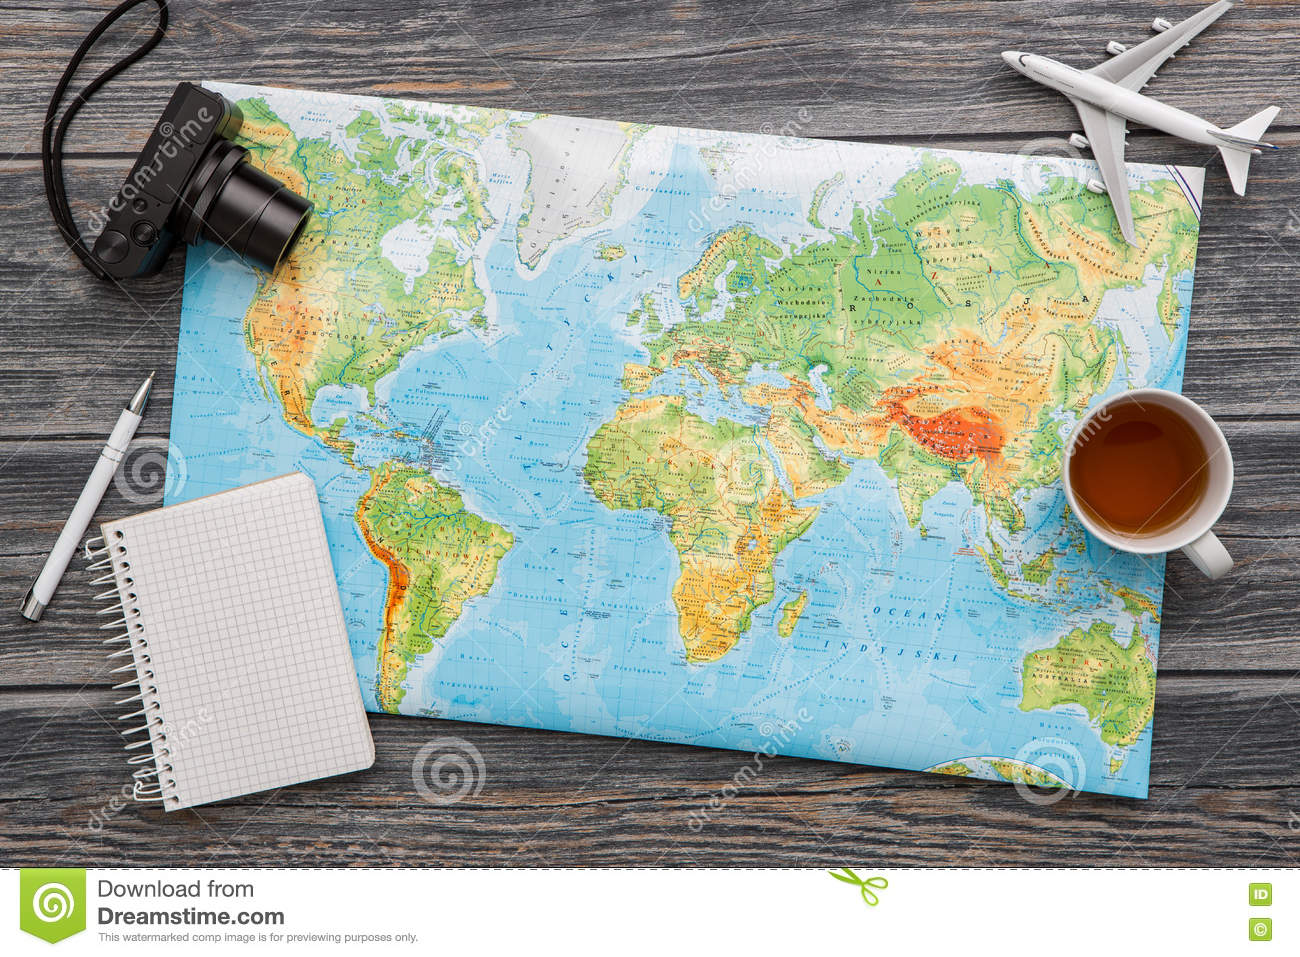 Business Travel Traveling Map World Concept. Stock Image - Image of on